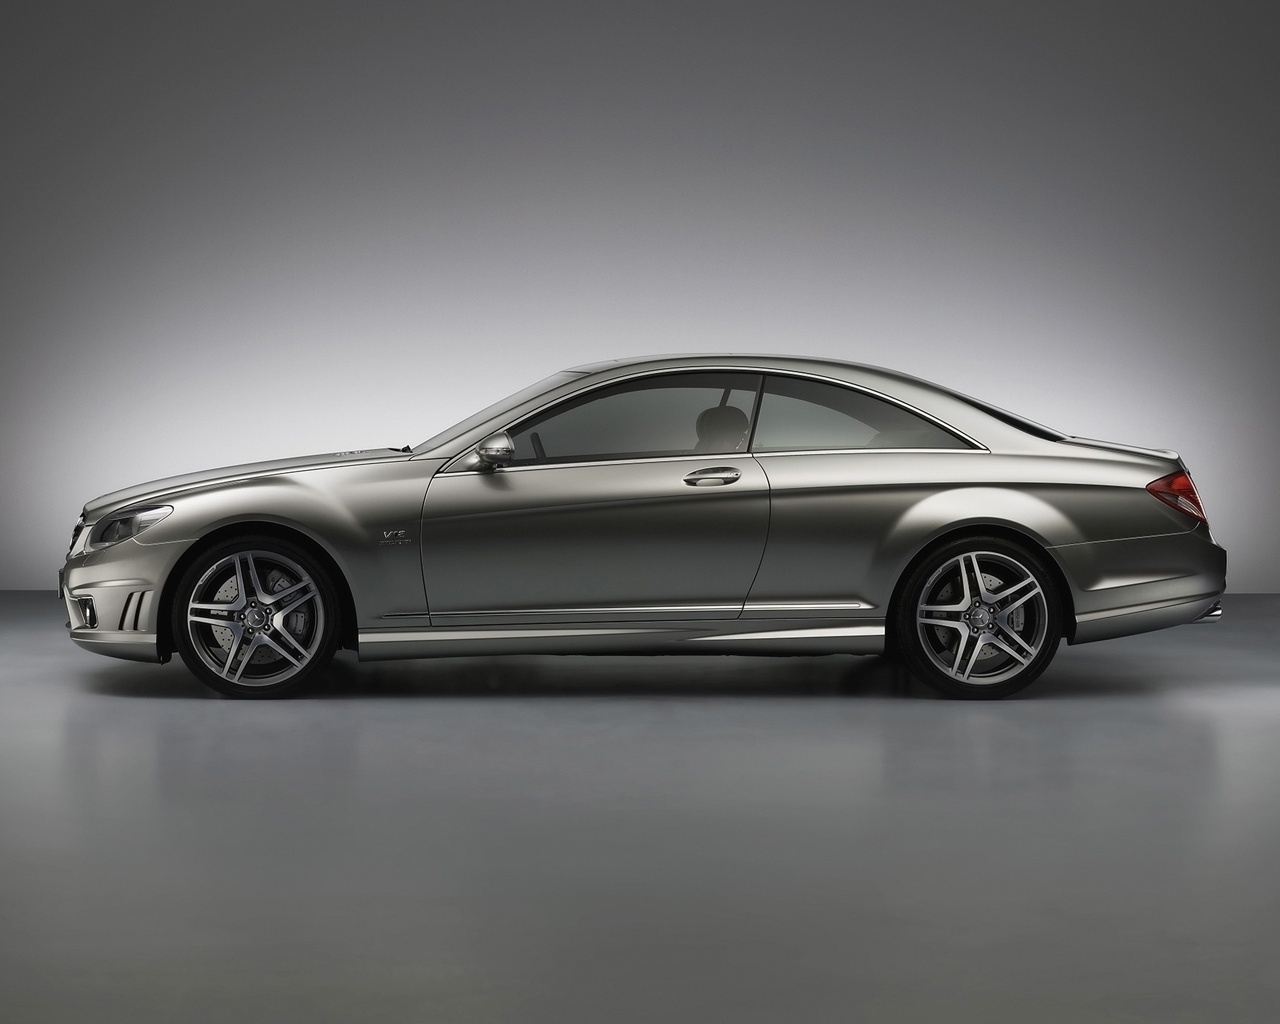 Mercedes Benz CL65 AMG 2008 for 1280 x 1024 resolution